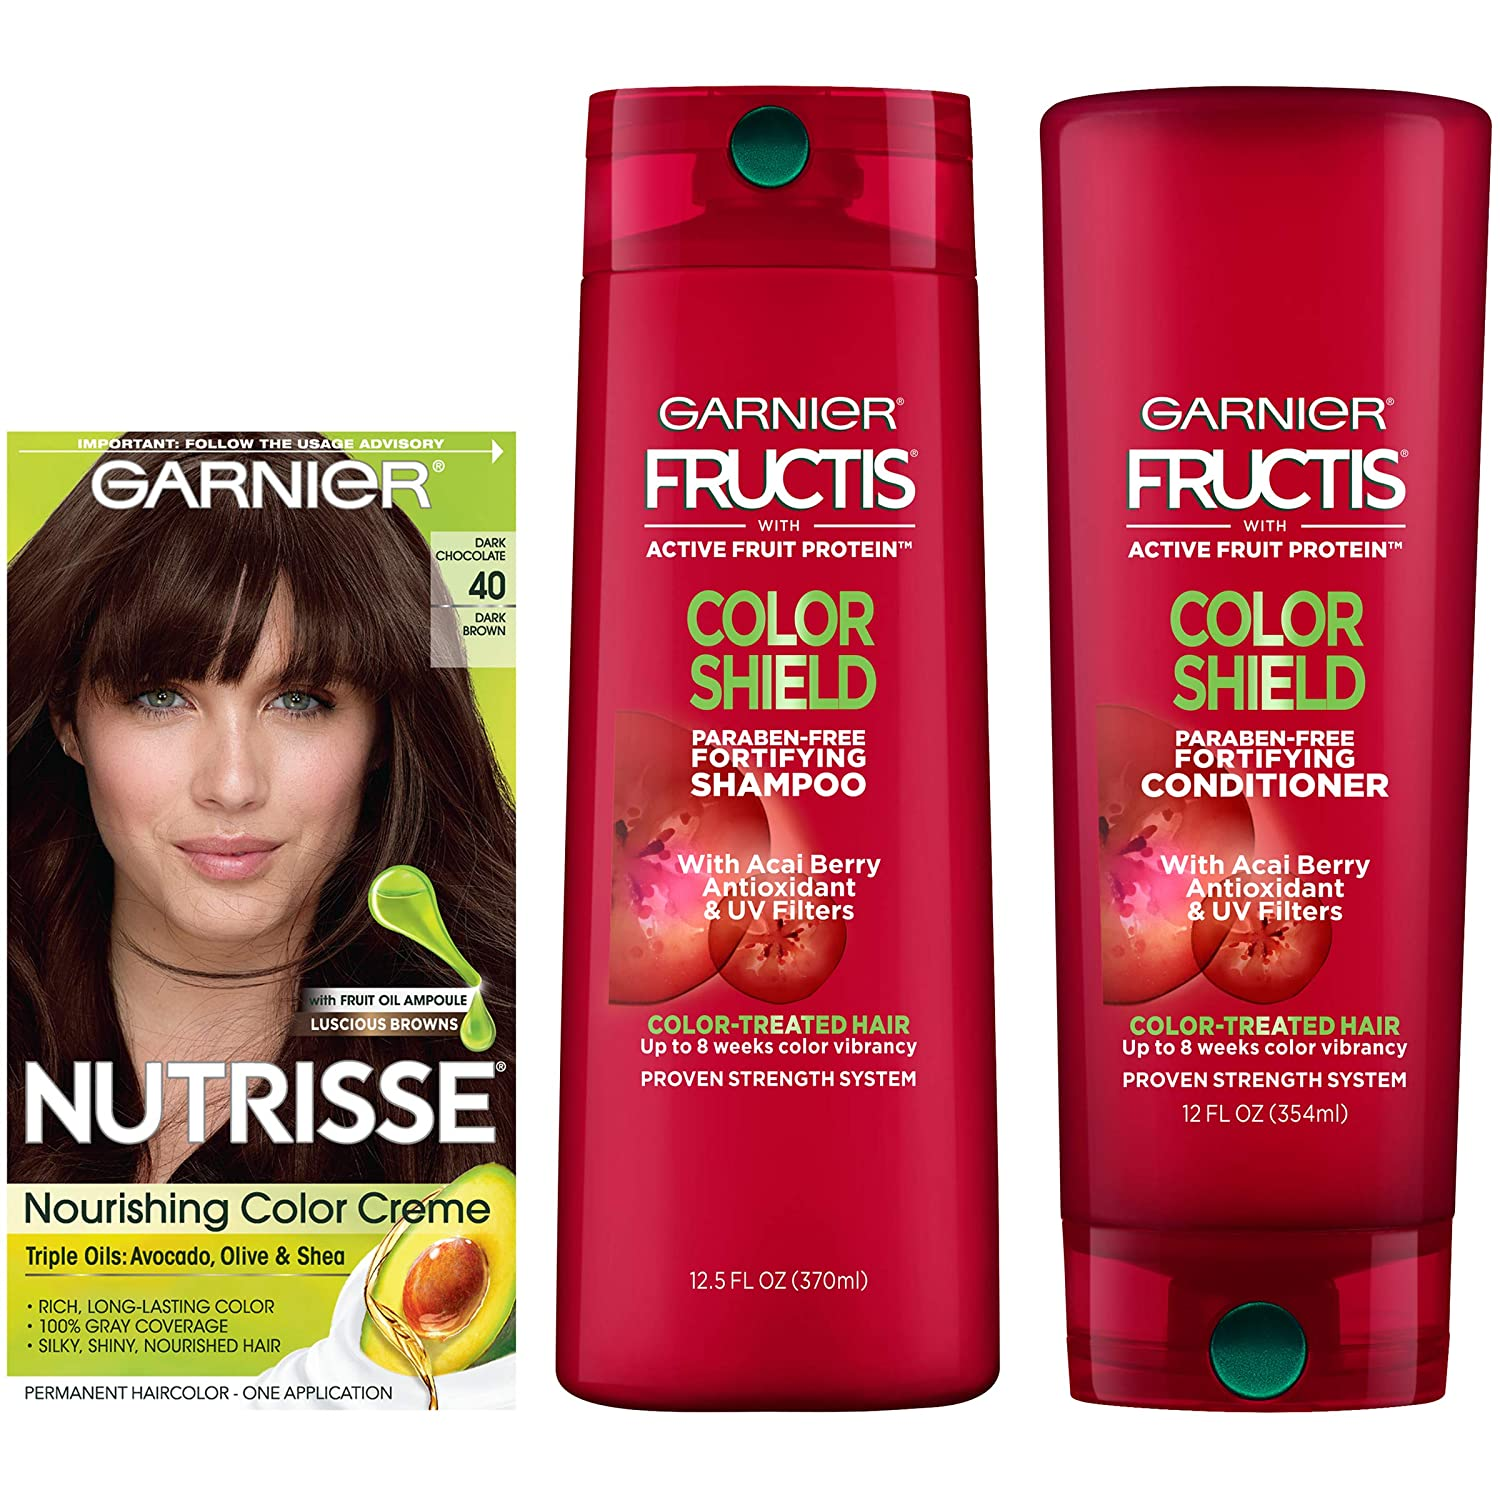 Garnier Nutrisse Hair Color and Fructis Color Shield Regimen Kit, 40, 3 count